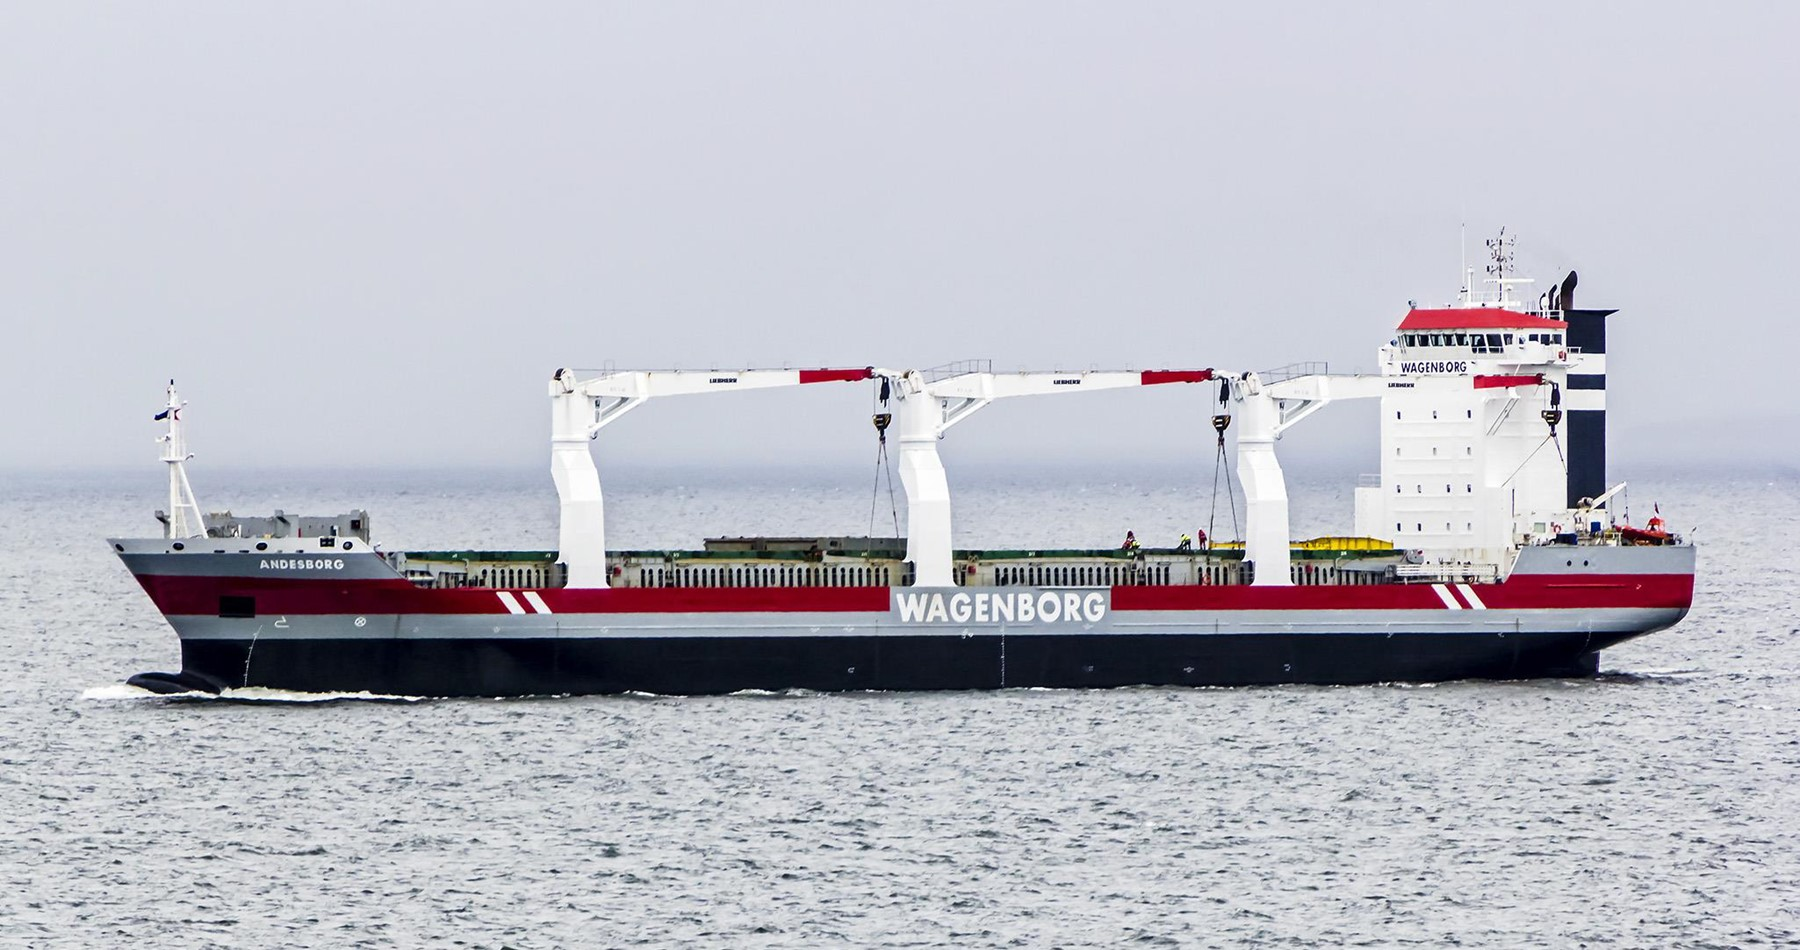 Time charter contract MV Andesborg for direct service between NW Europe and East Africa